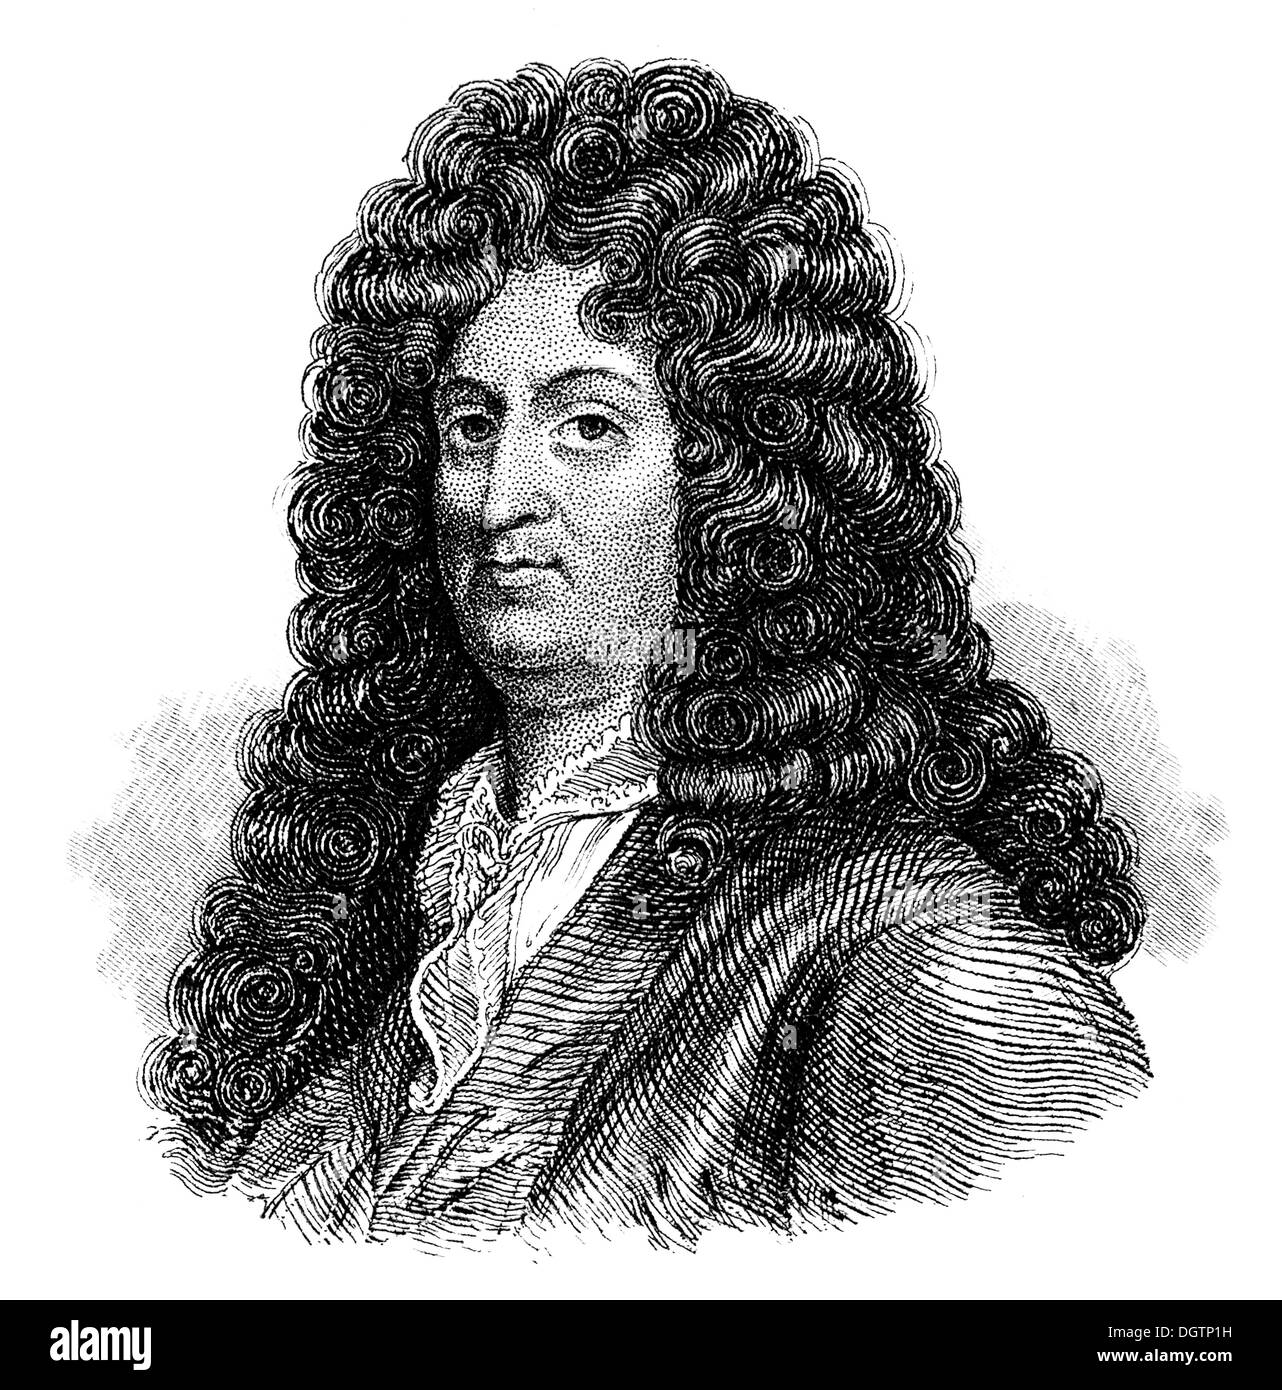 Jean Baptiste Racine, 1639 - 1699, an author of the French classicism - Stock Image